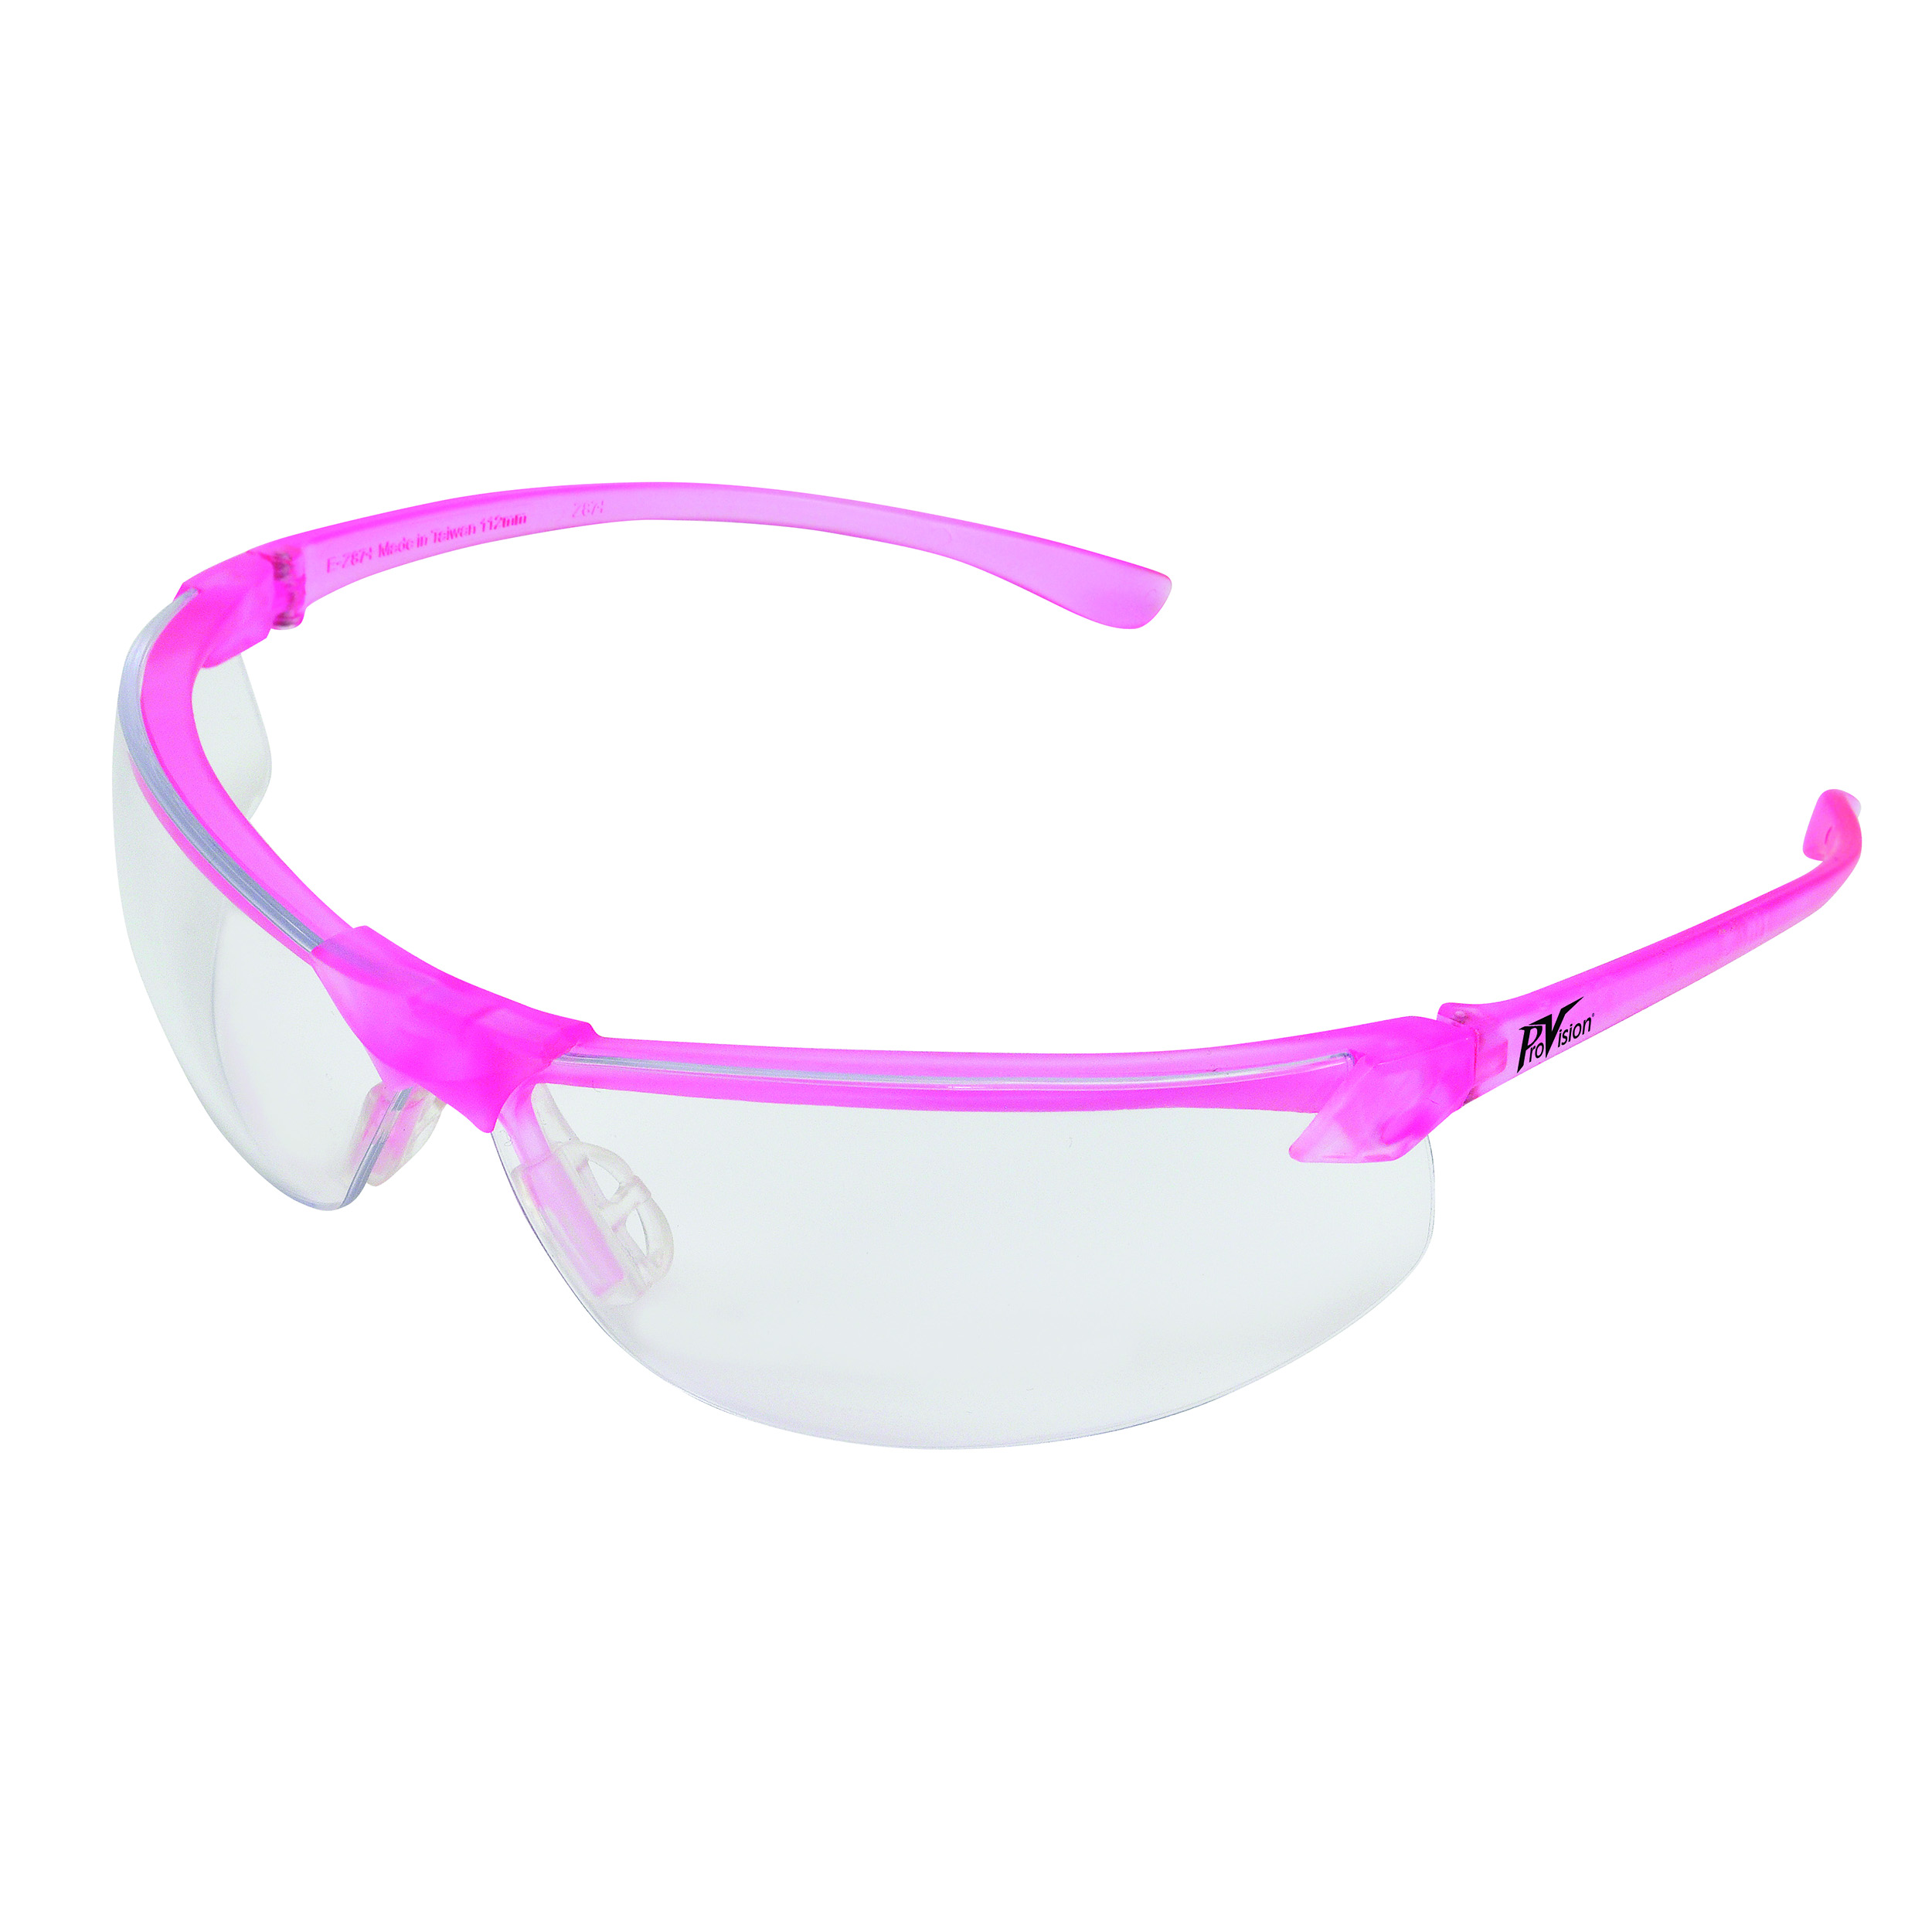 9200114 ProVision Allure Eyewear Pink Frame, Clear Lens, 3604PC